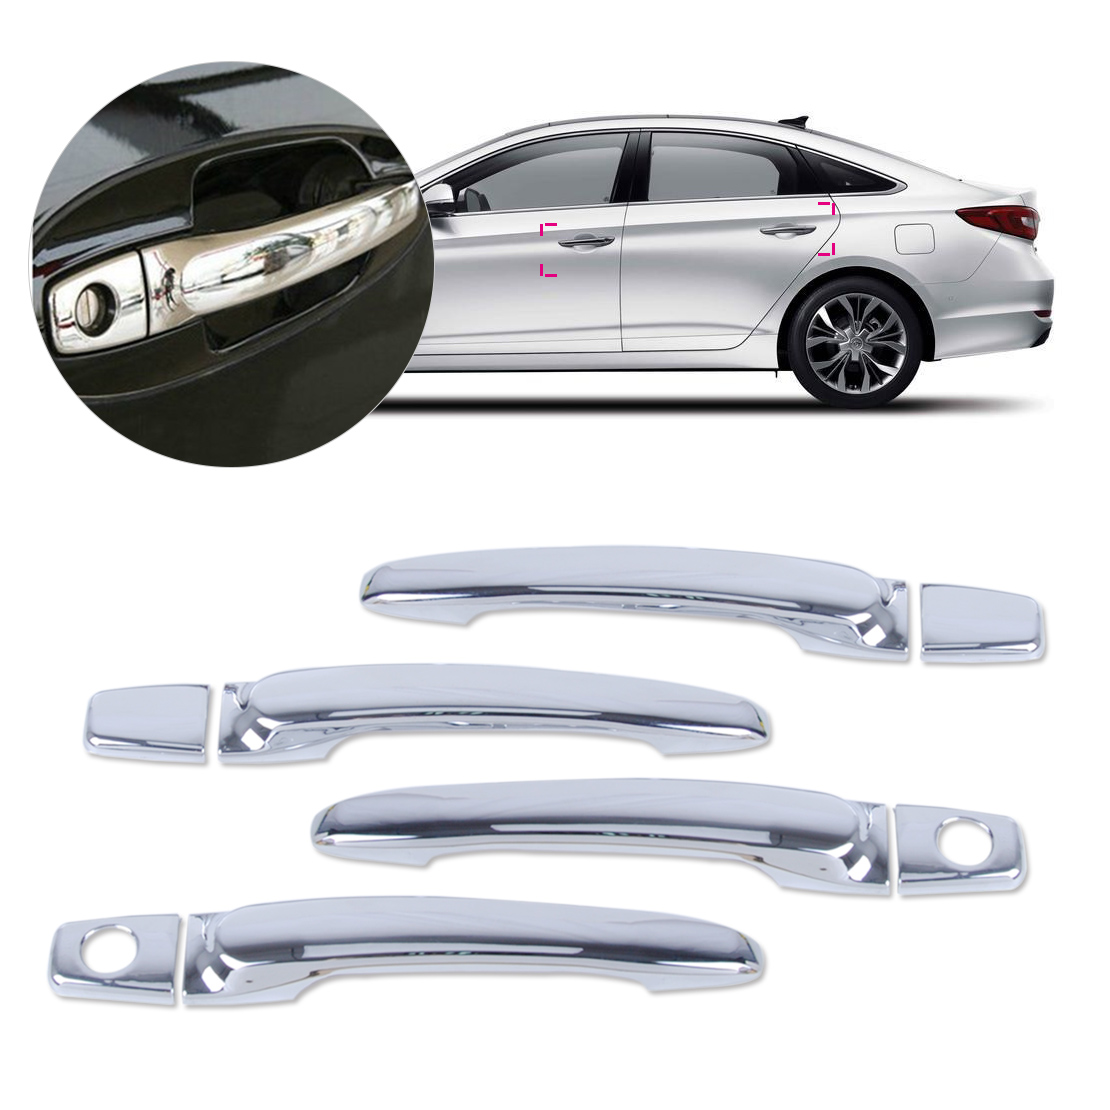 beler ABS Triple Chrome Car Vehicle Door Handle Covers Trim Cap w/ smart key for Hyundai Sonata 2002 2003 2004 2005